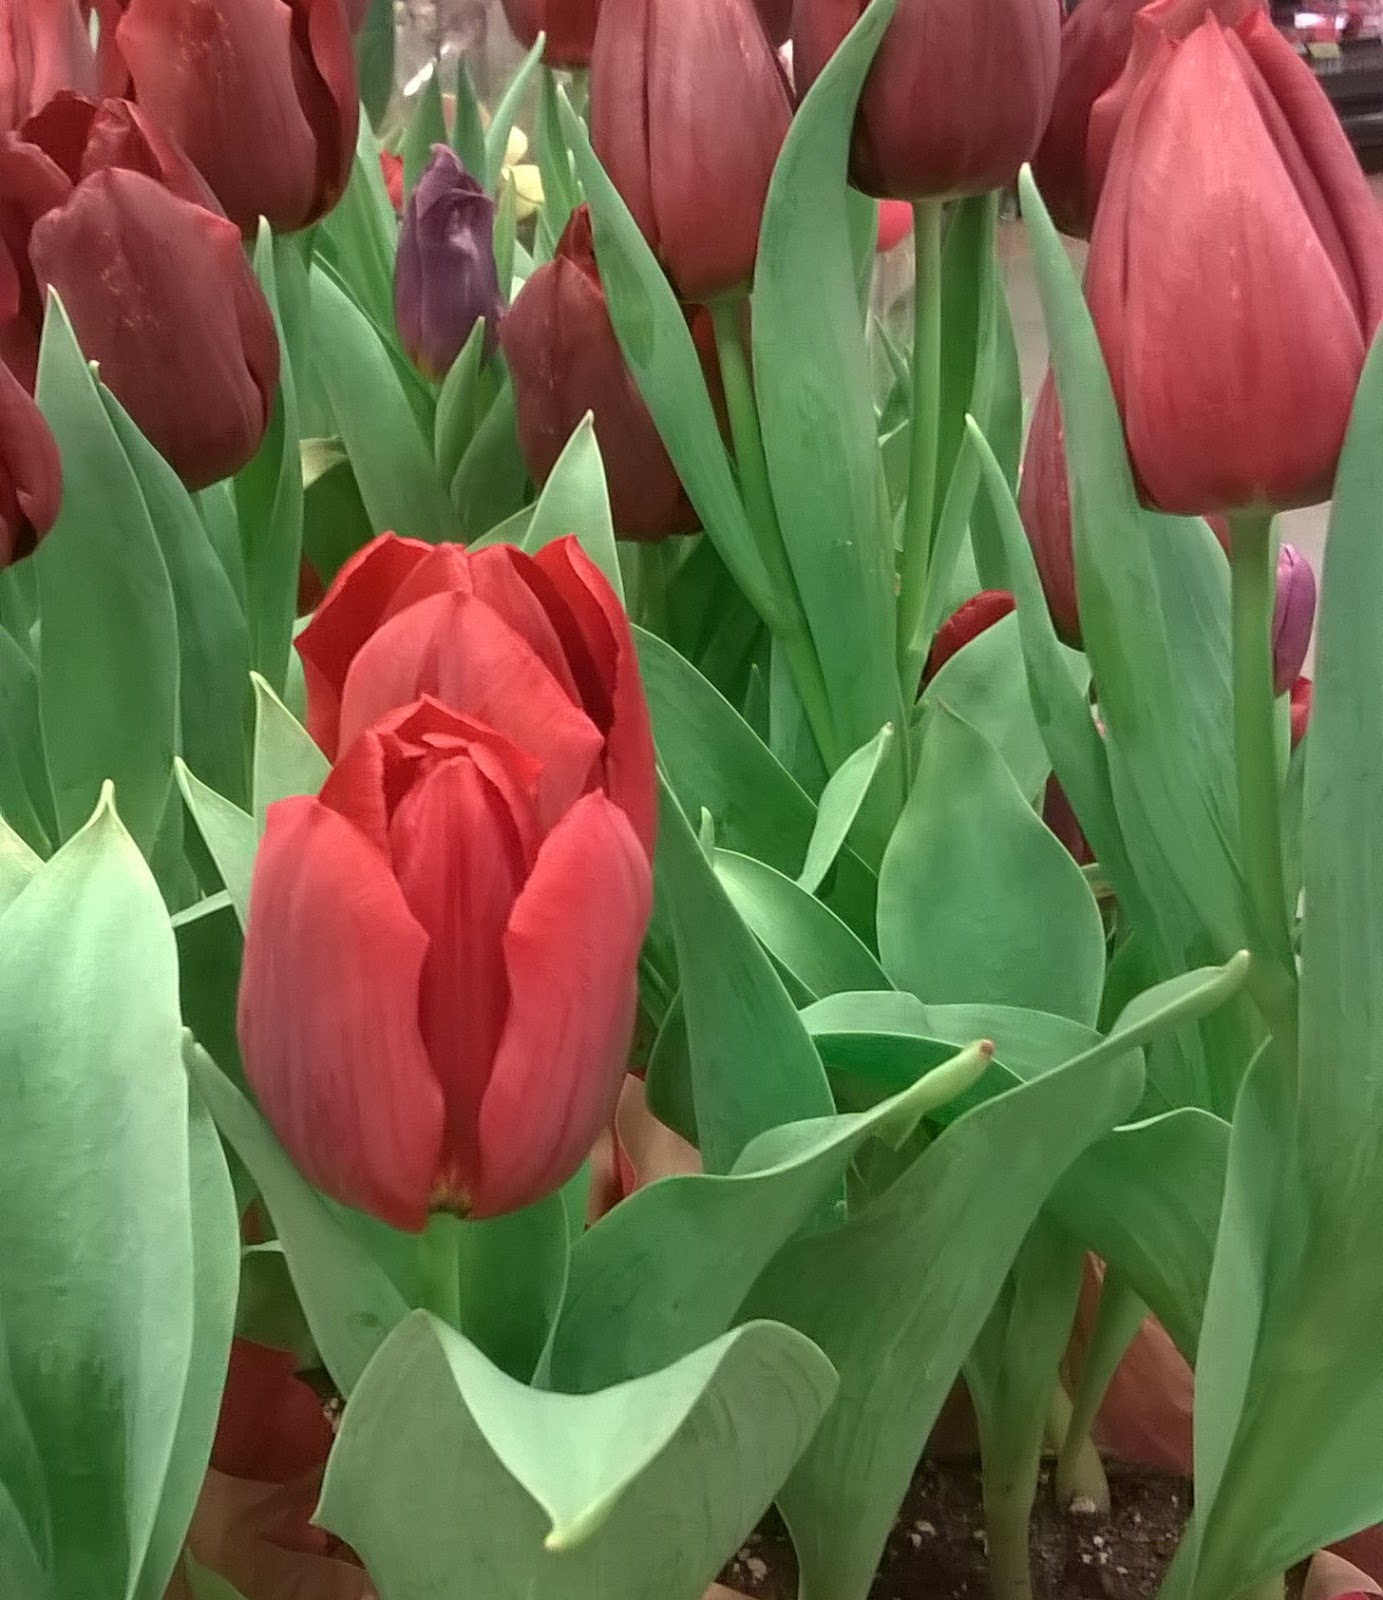 Tulips,That Change Colors | Flower and Garden